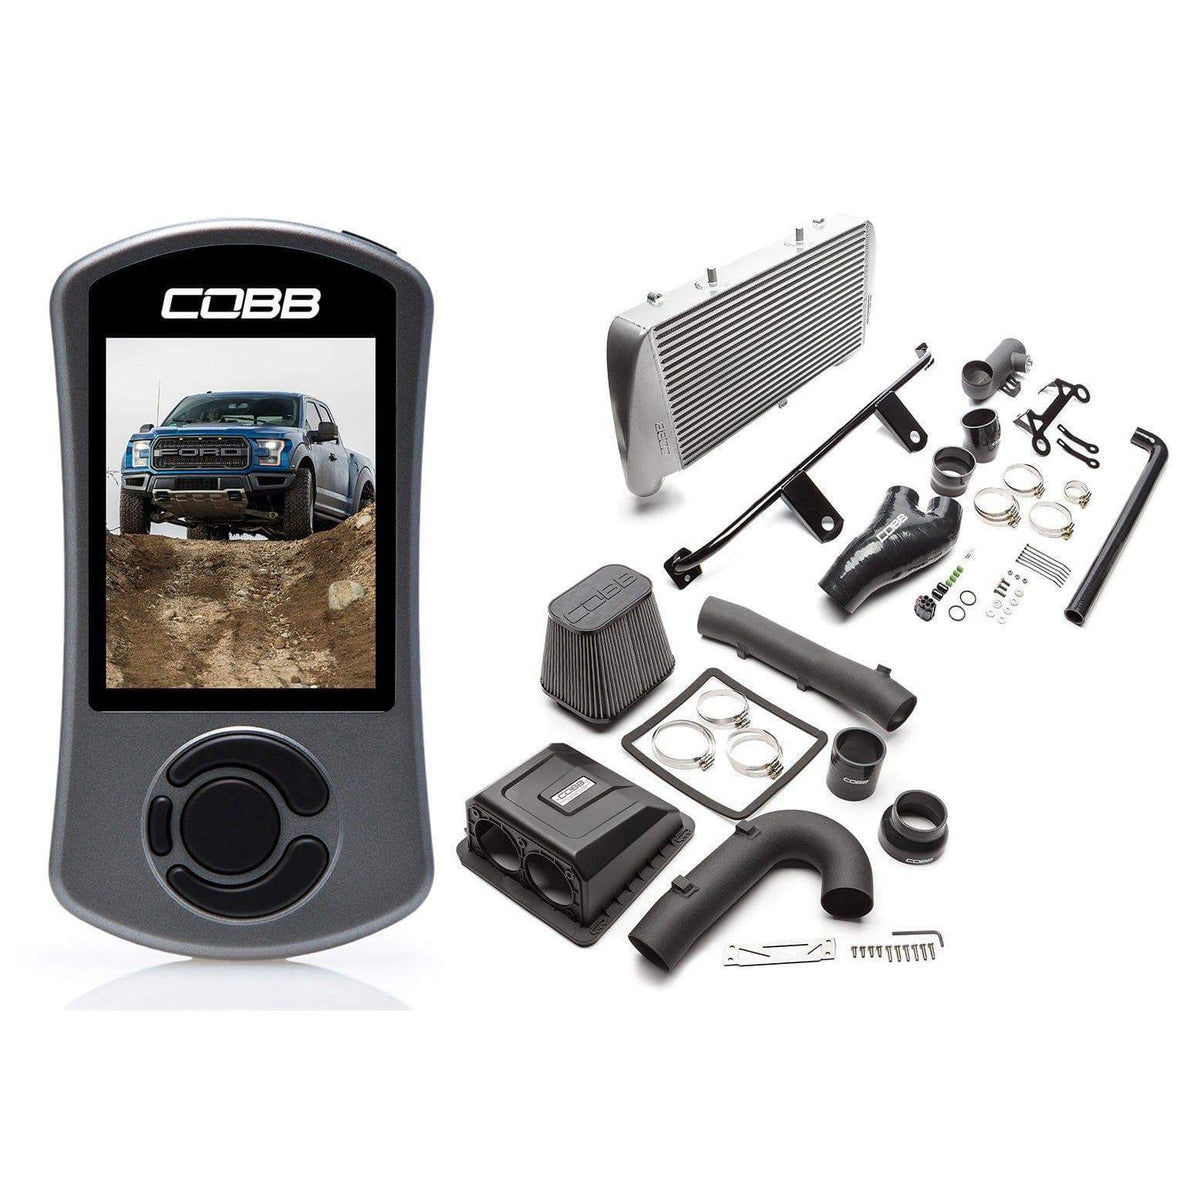 COBB Stage 2 Power Package | 17-20 Ford F-150 Raptor / 19-20 F-150 Limited (FOR0050020)